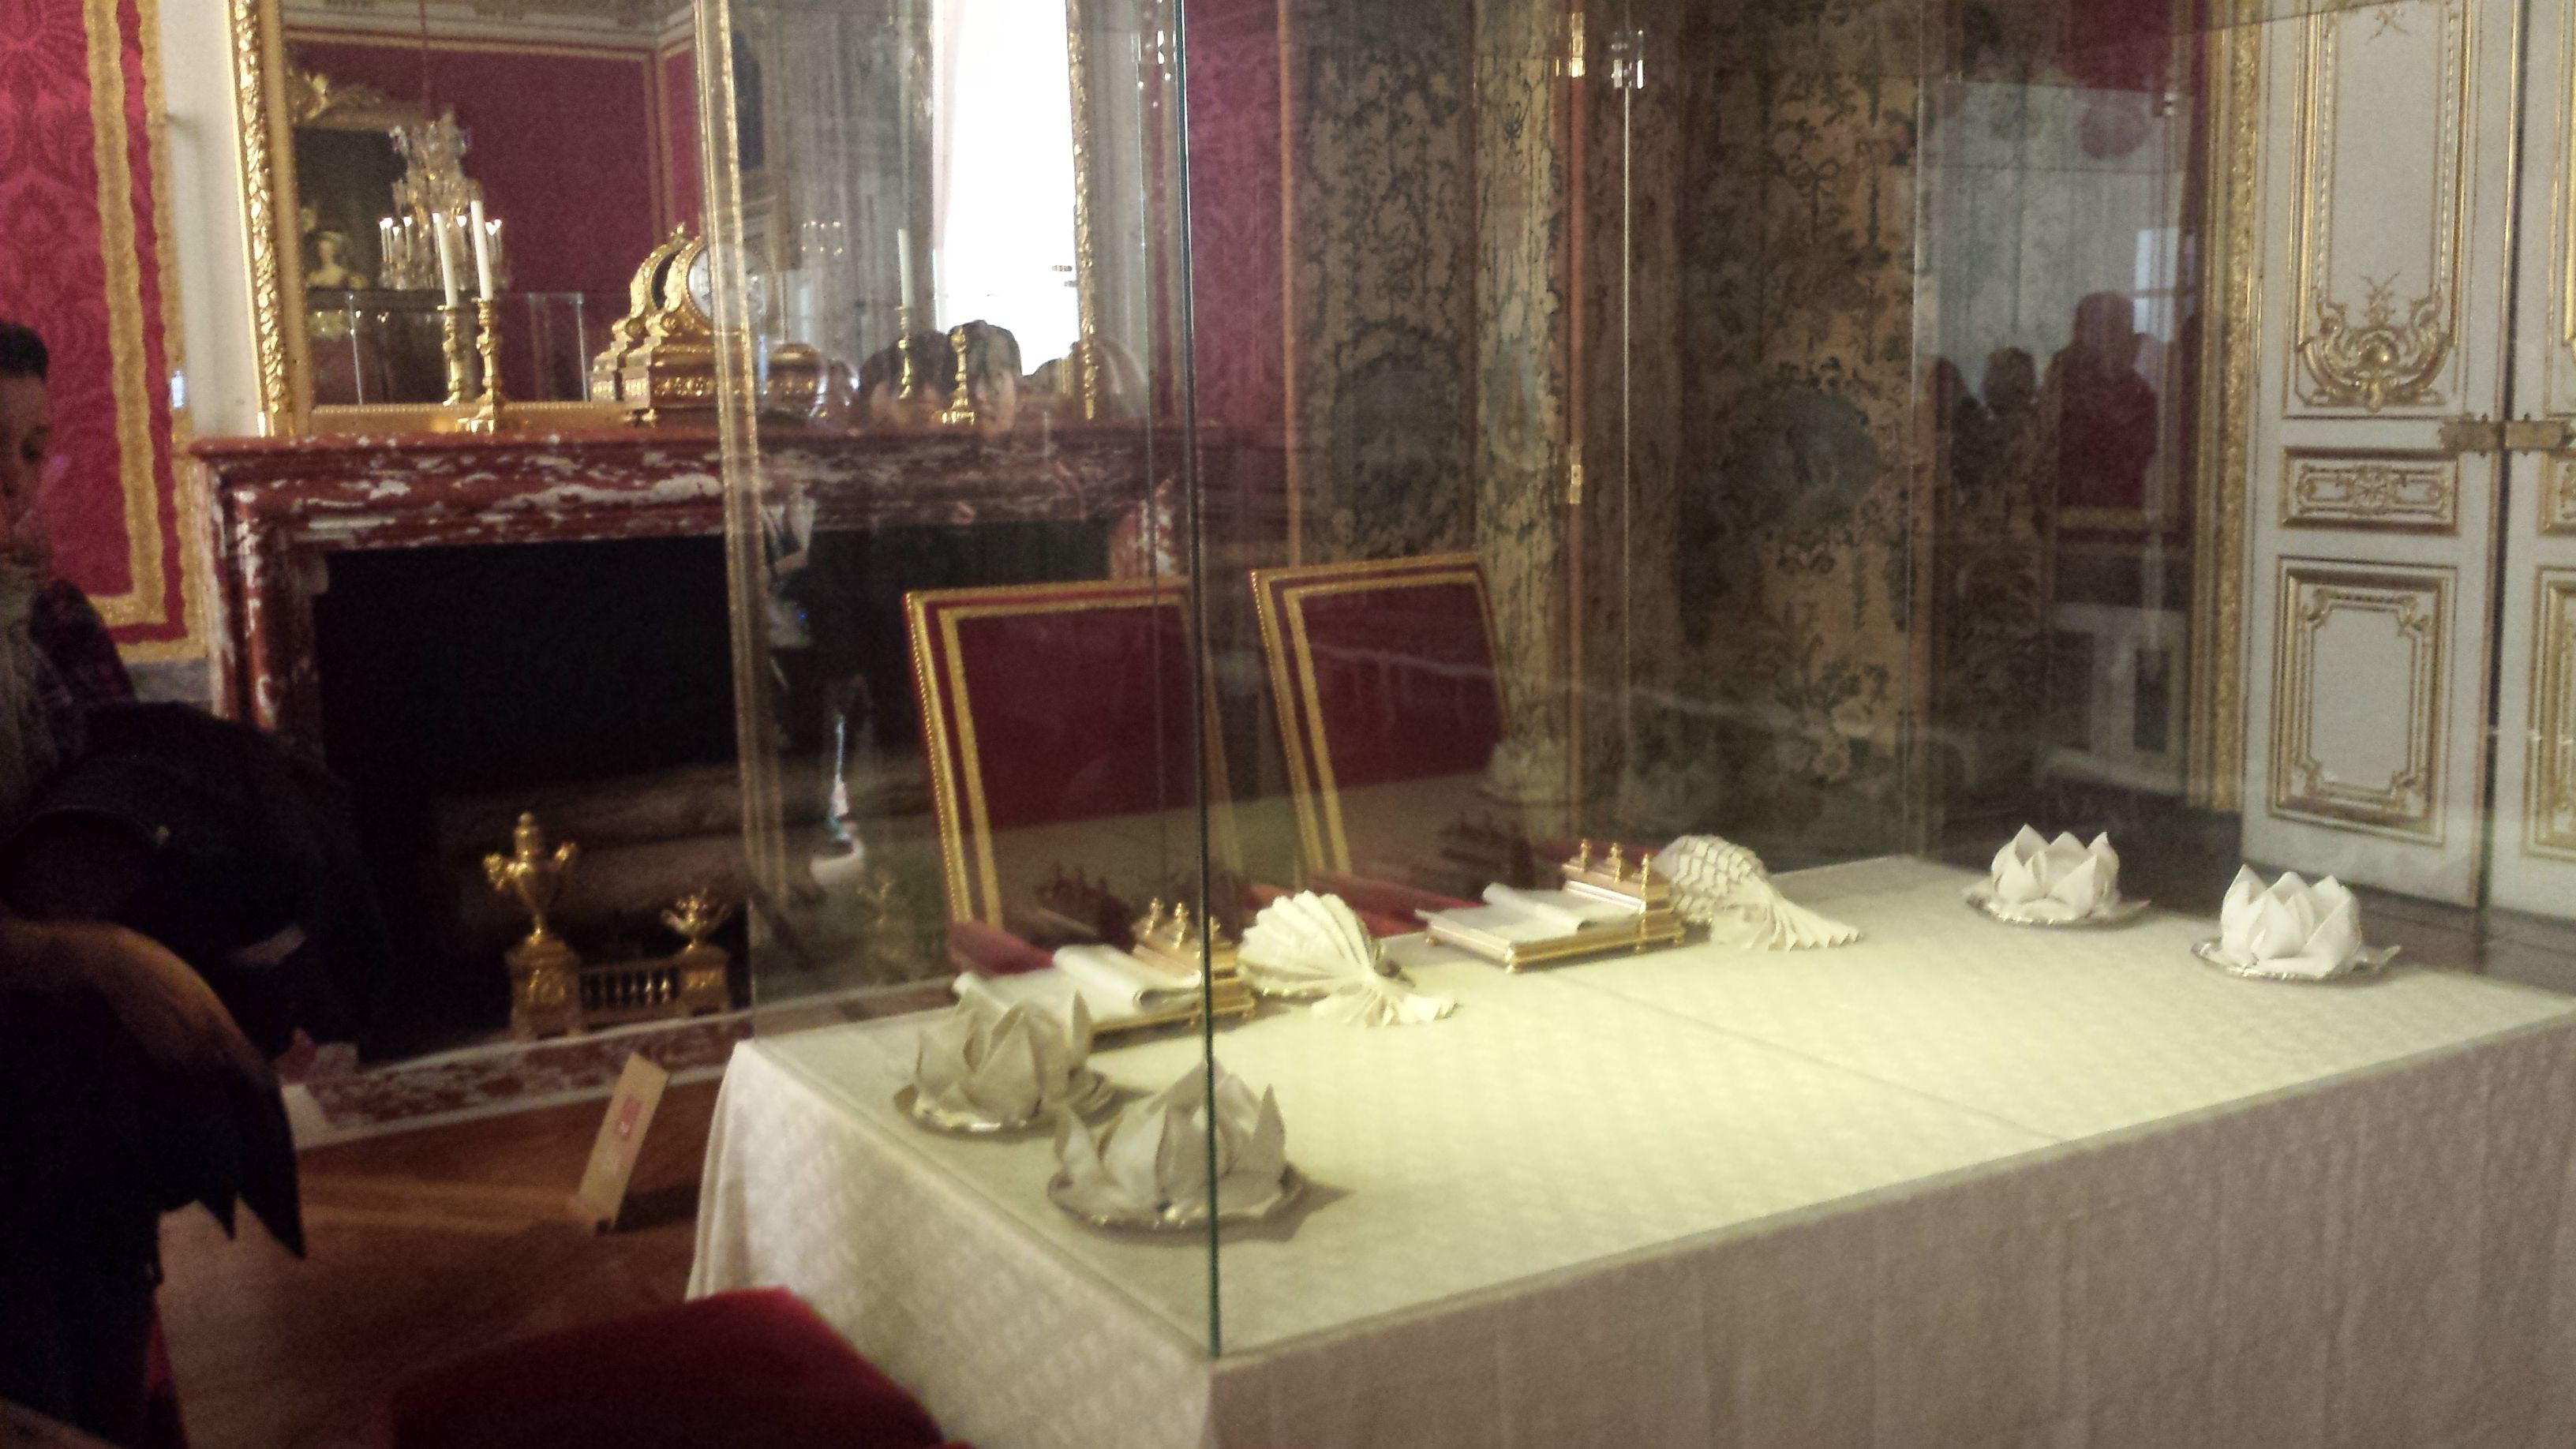 There's a series of rooms where normal people could get a glimpse of the king and queen's daily lives, including their bedrooms and this dining room